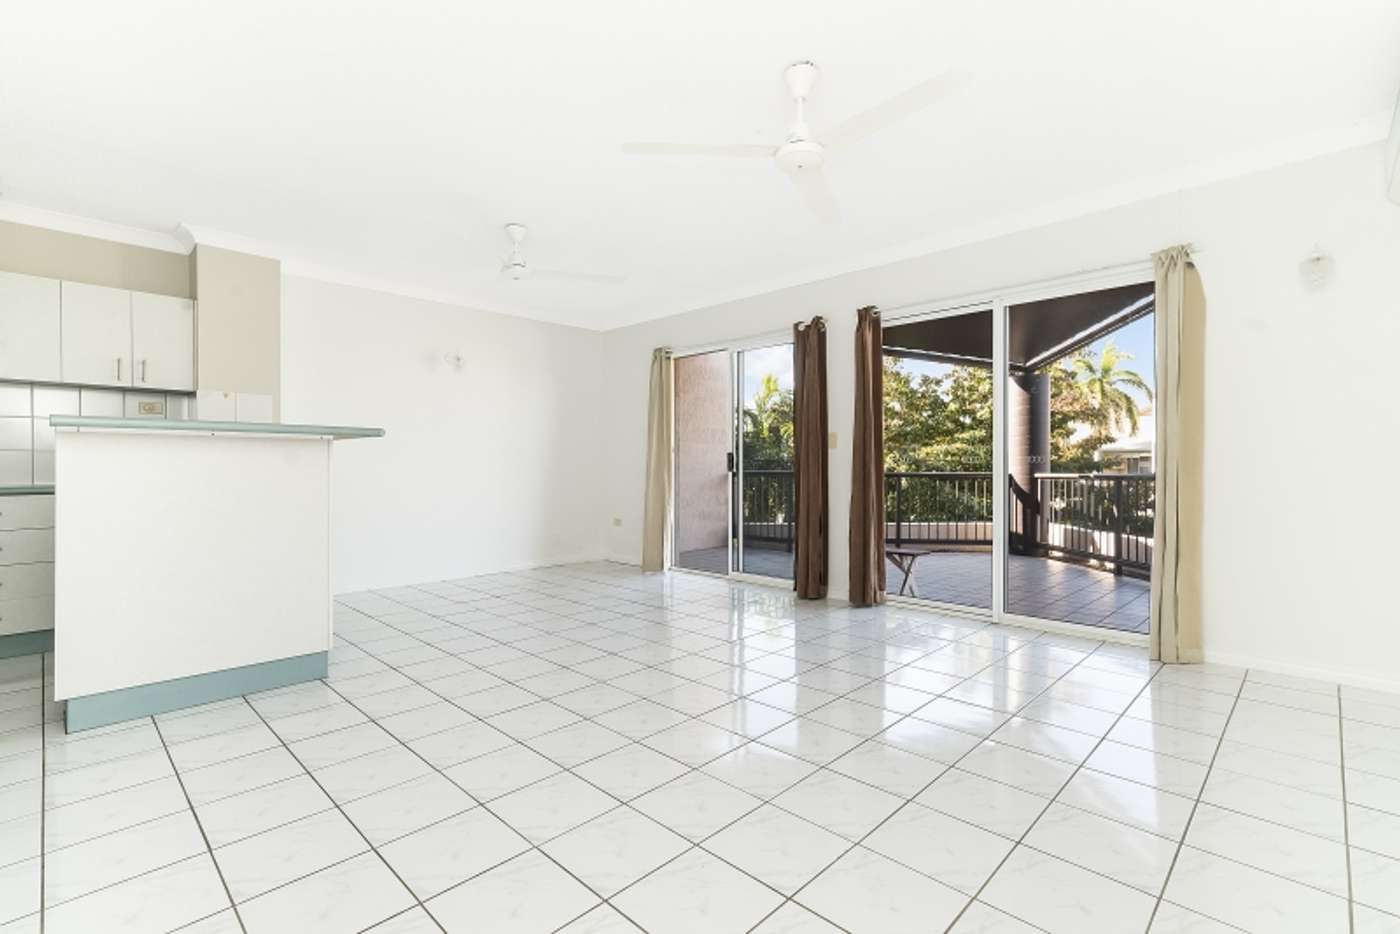 Fifth view of Homely apartment listing, 11/65 Aralia Street, Nightcliff NT 810